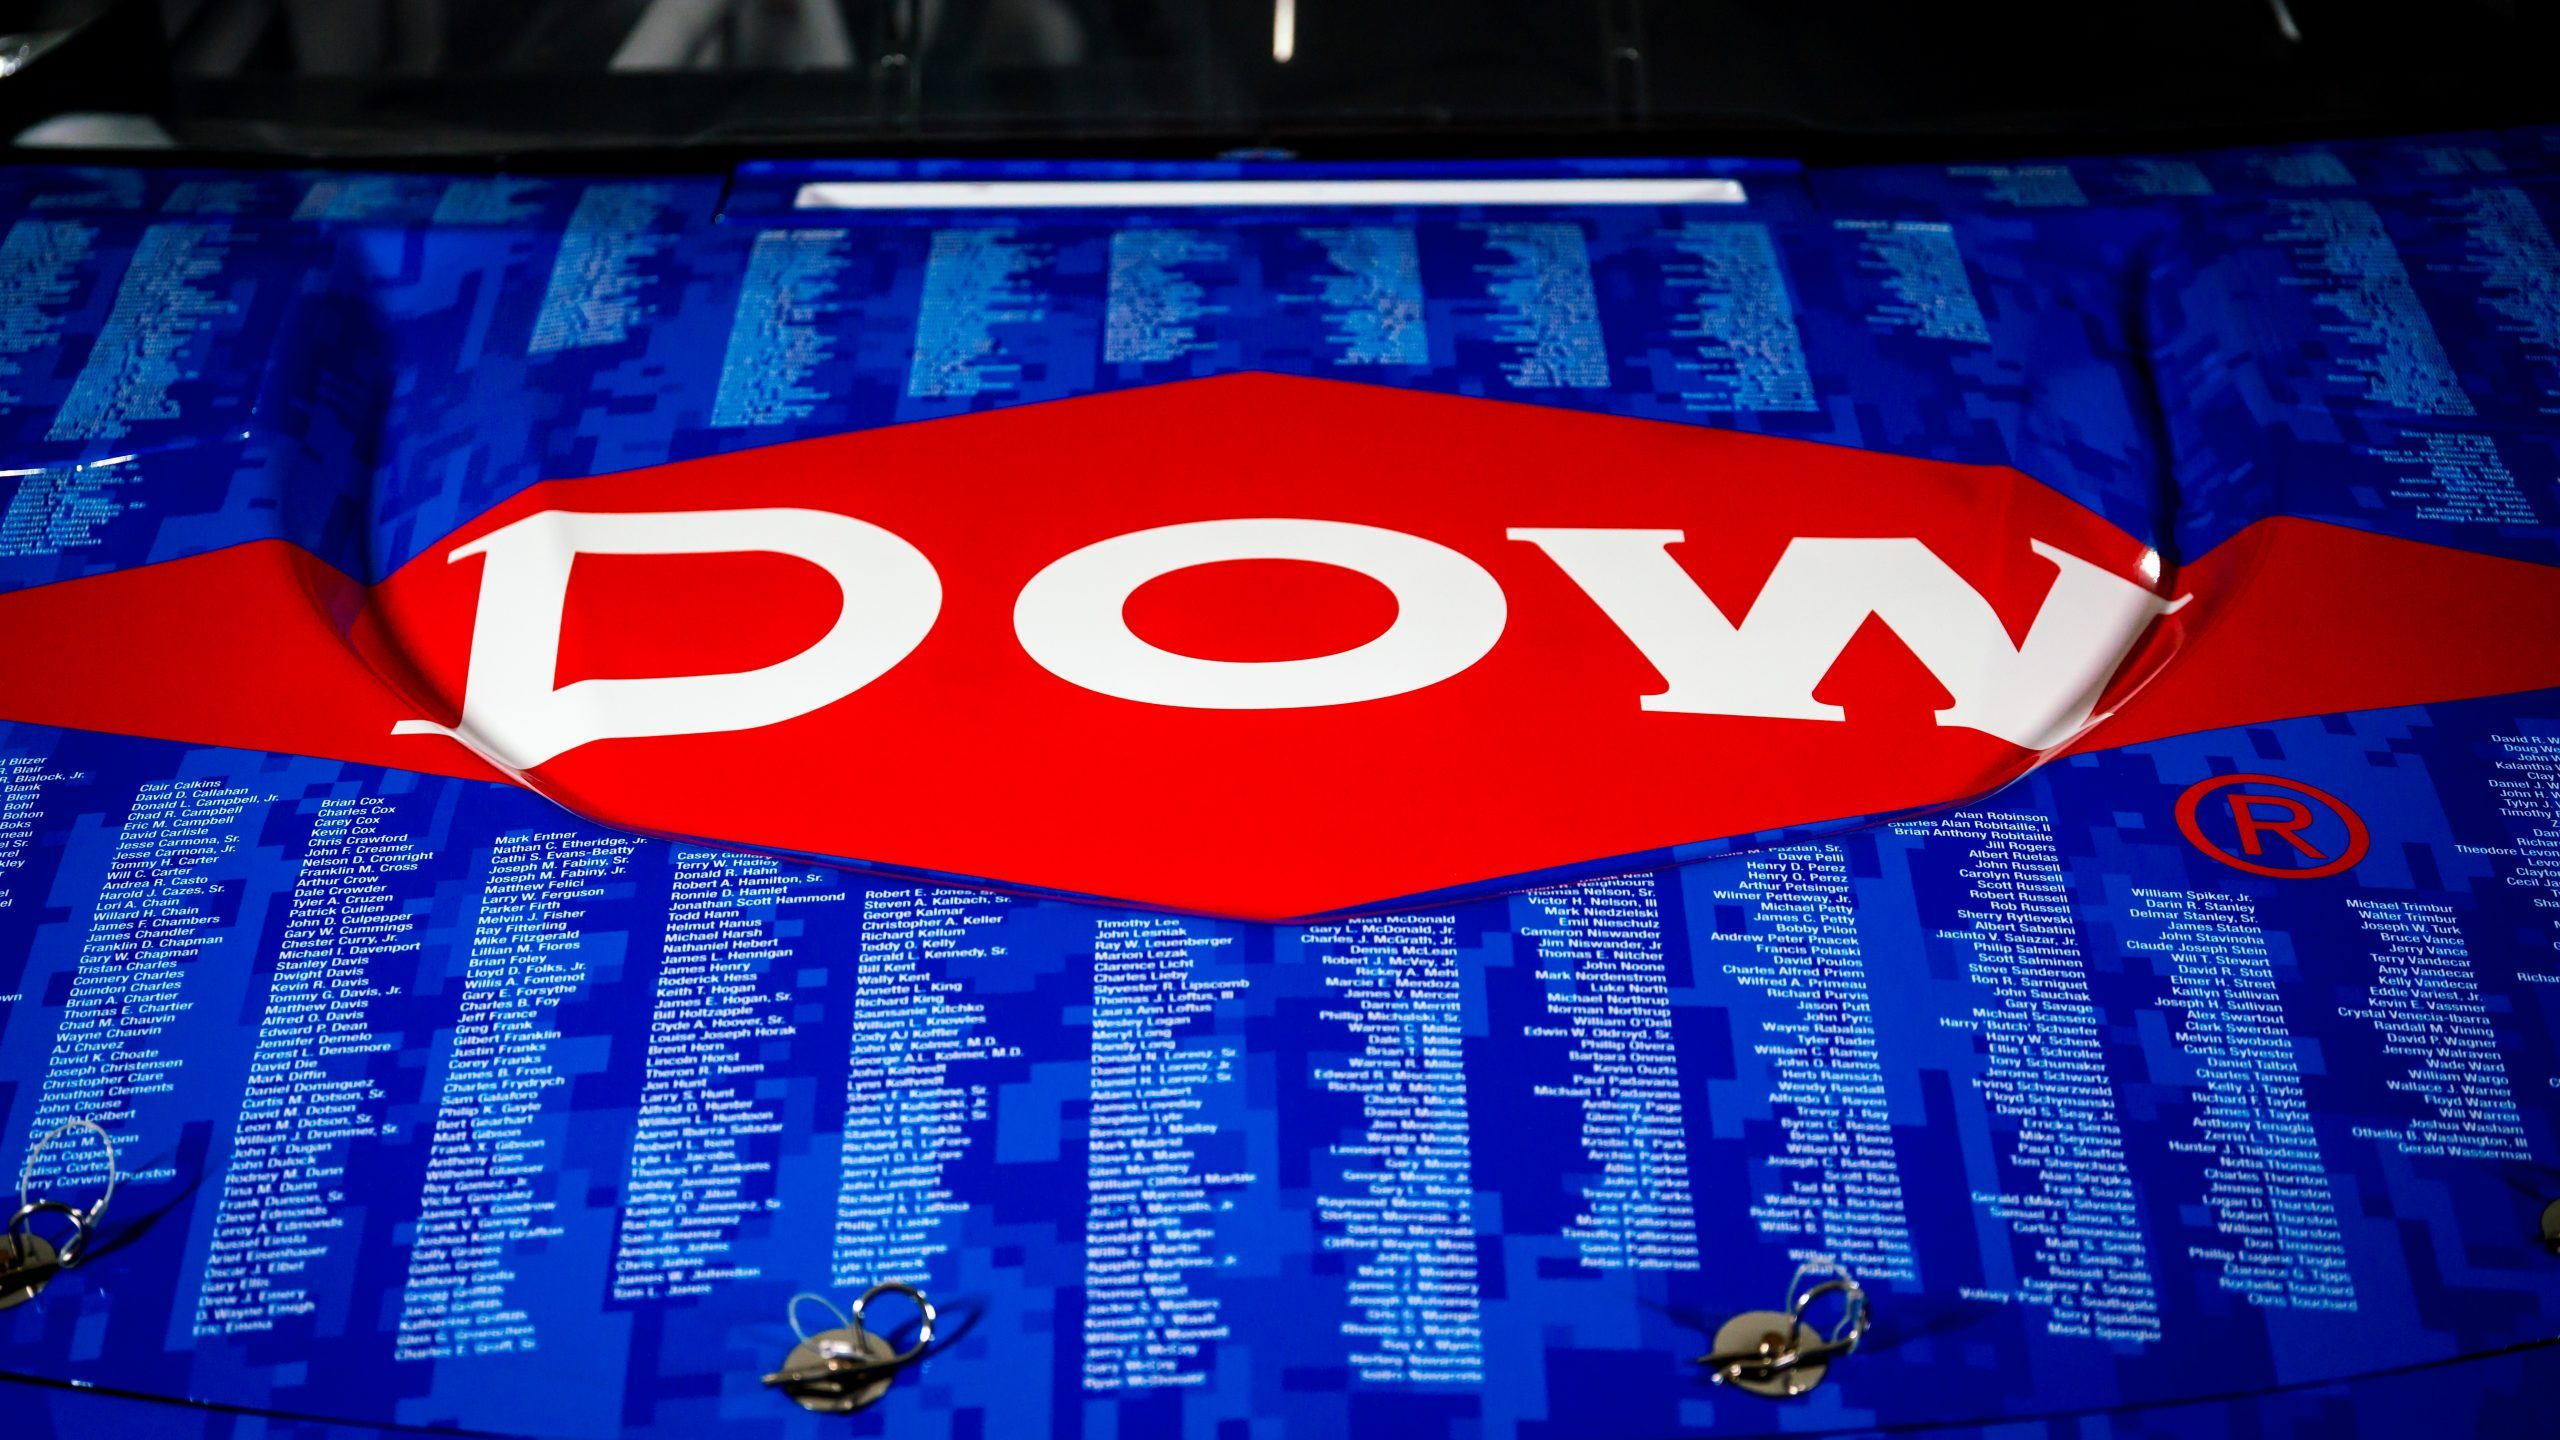 Significance of Dow Salutes Veterans Program